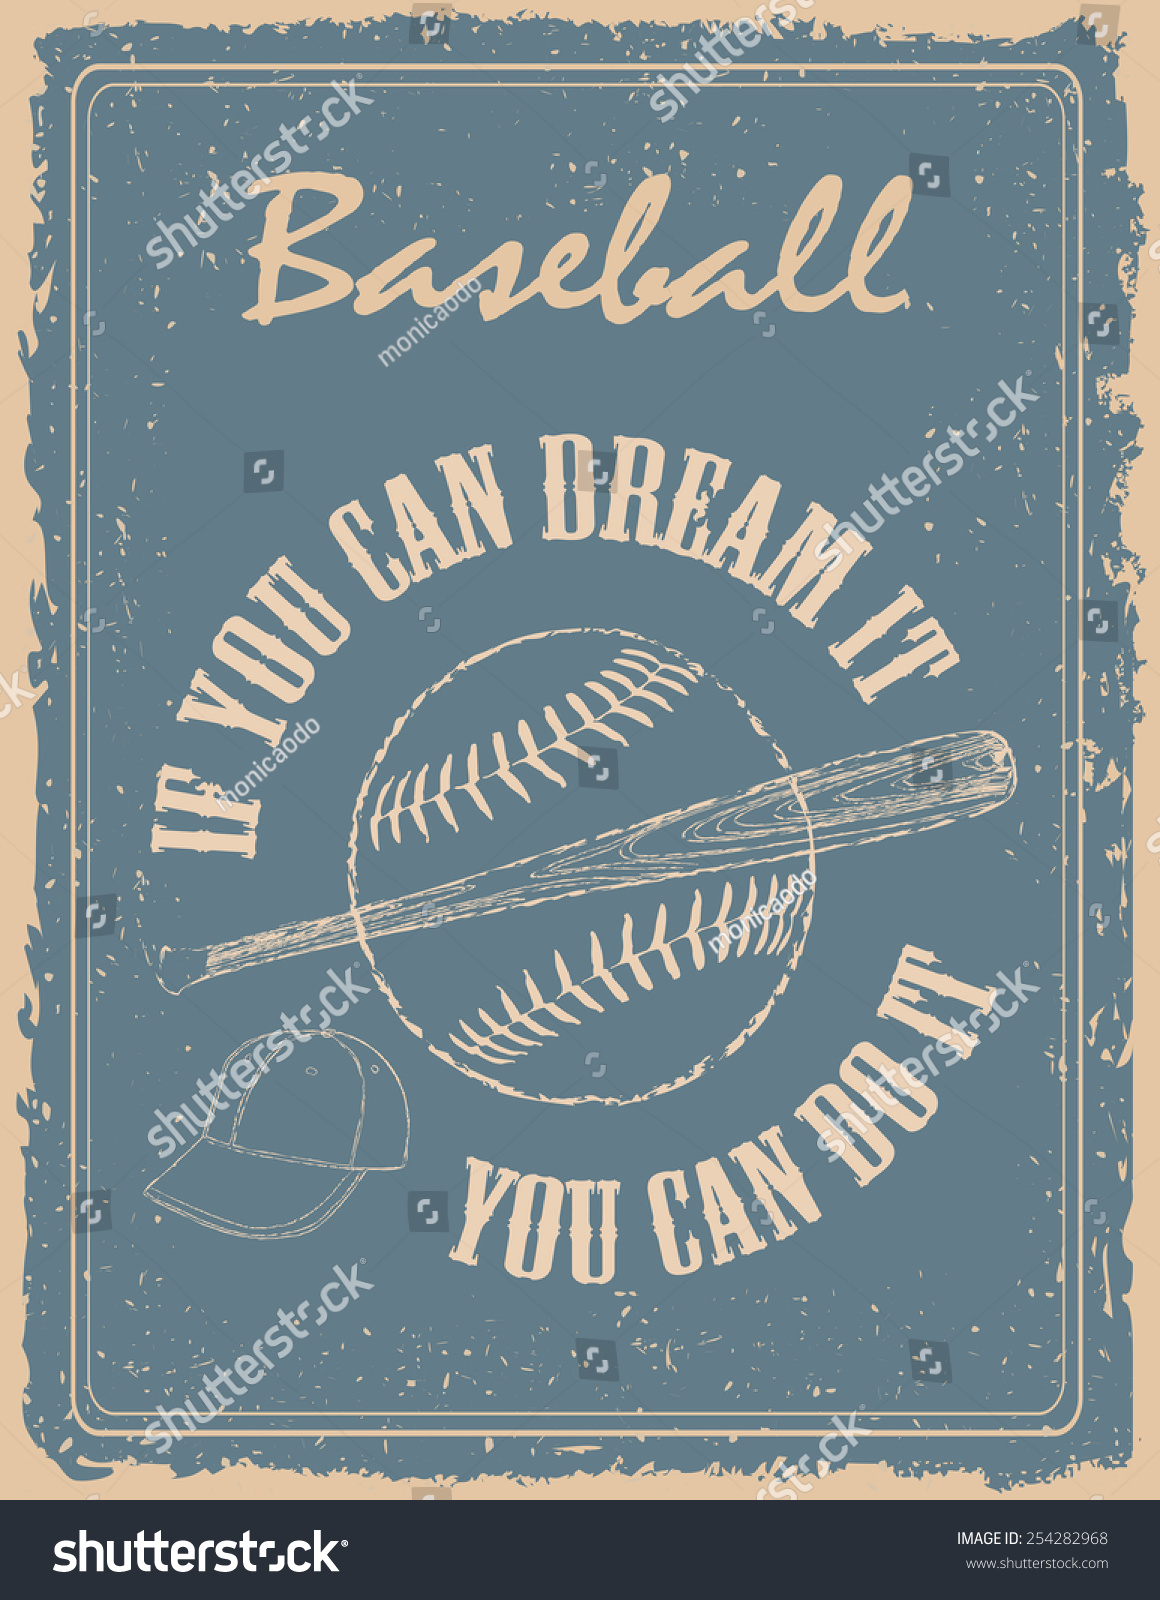 Baseball Quote Vintage Baseball Poster On Old Paper Stock Vector 254282968